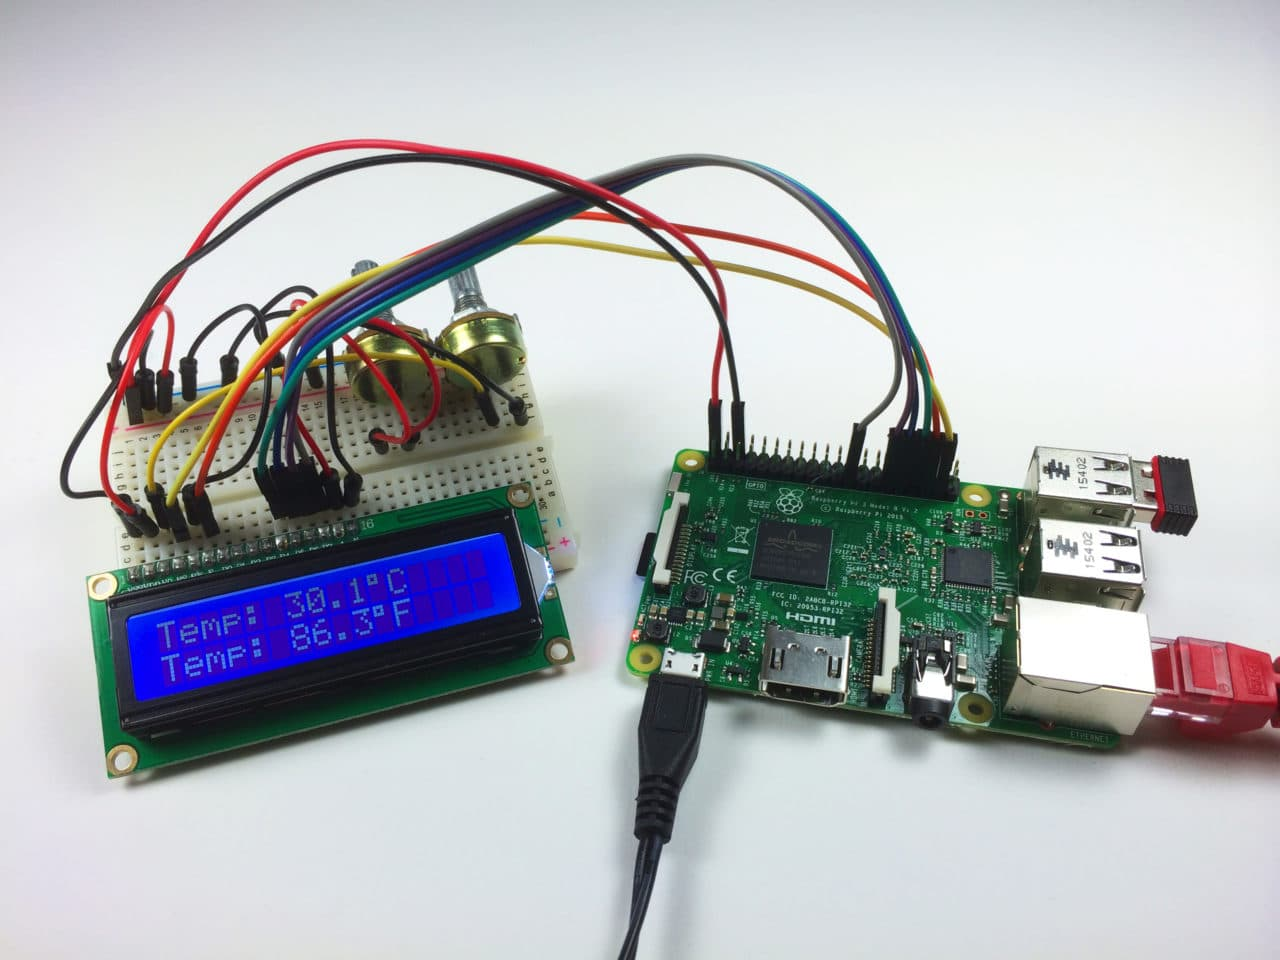 Astounding How To Setup An Lcd On The Raspberry Pi And Program It With C Wiring Cloud Icalpermsplehendilmohammedshrineorg